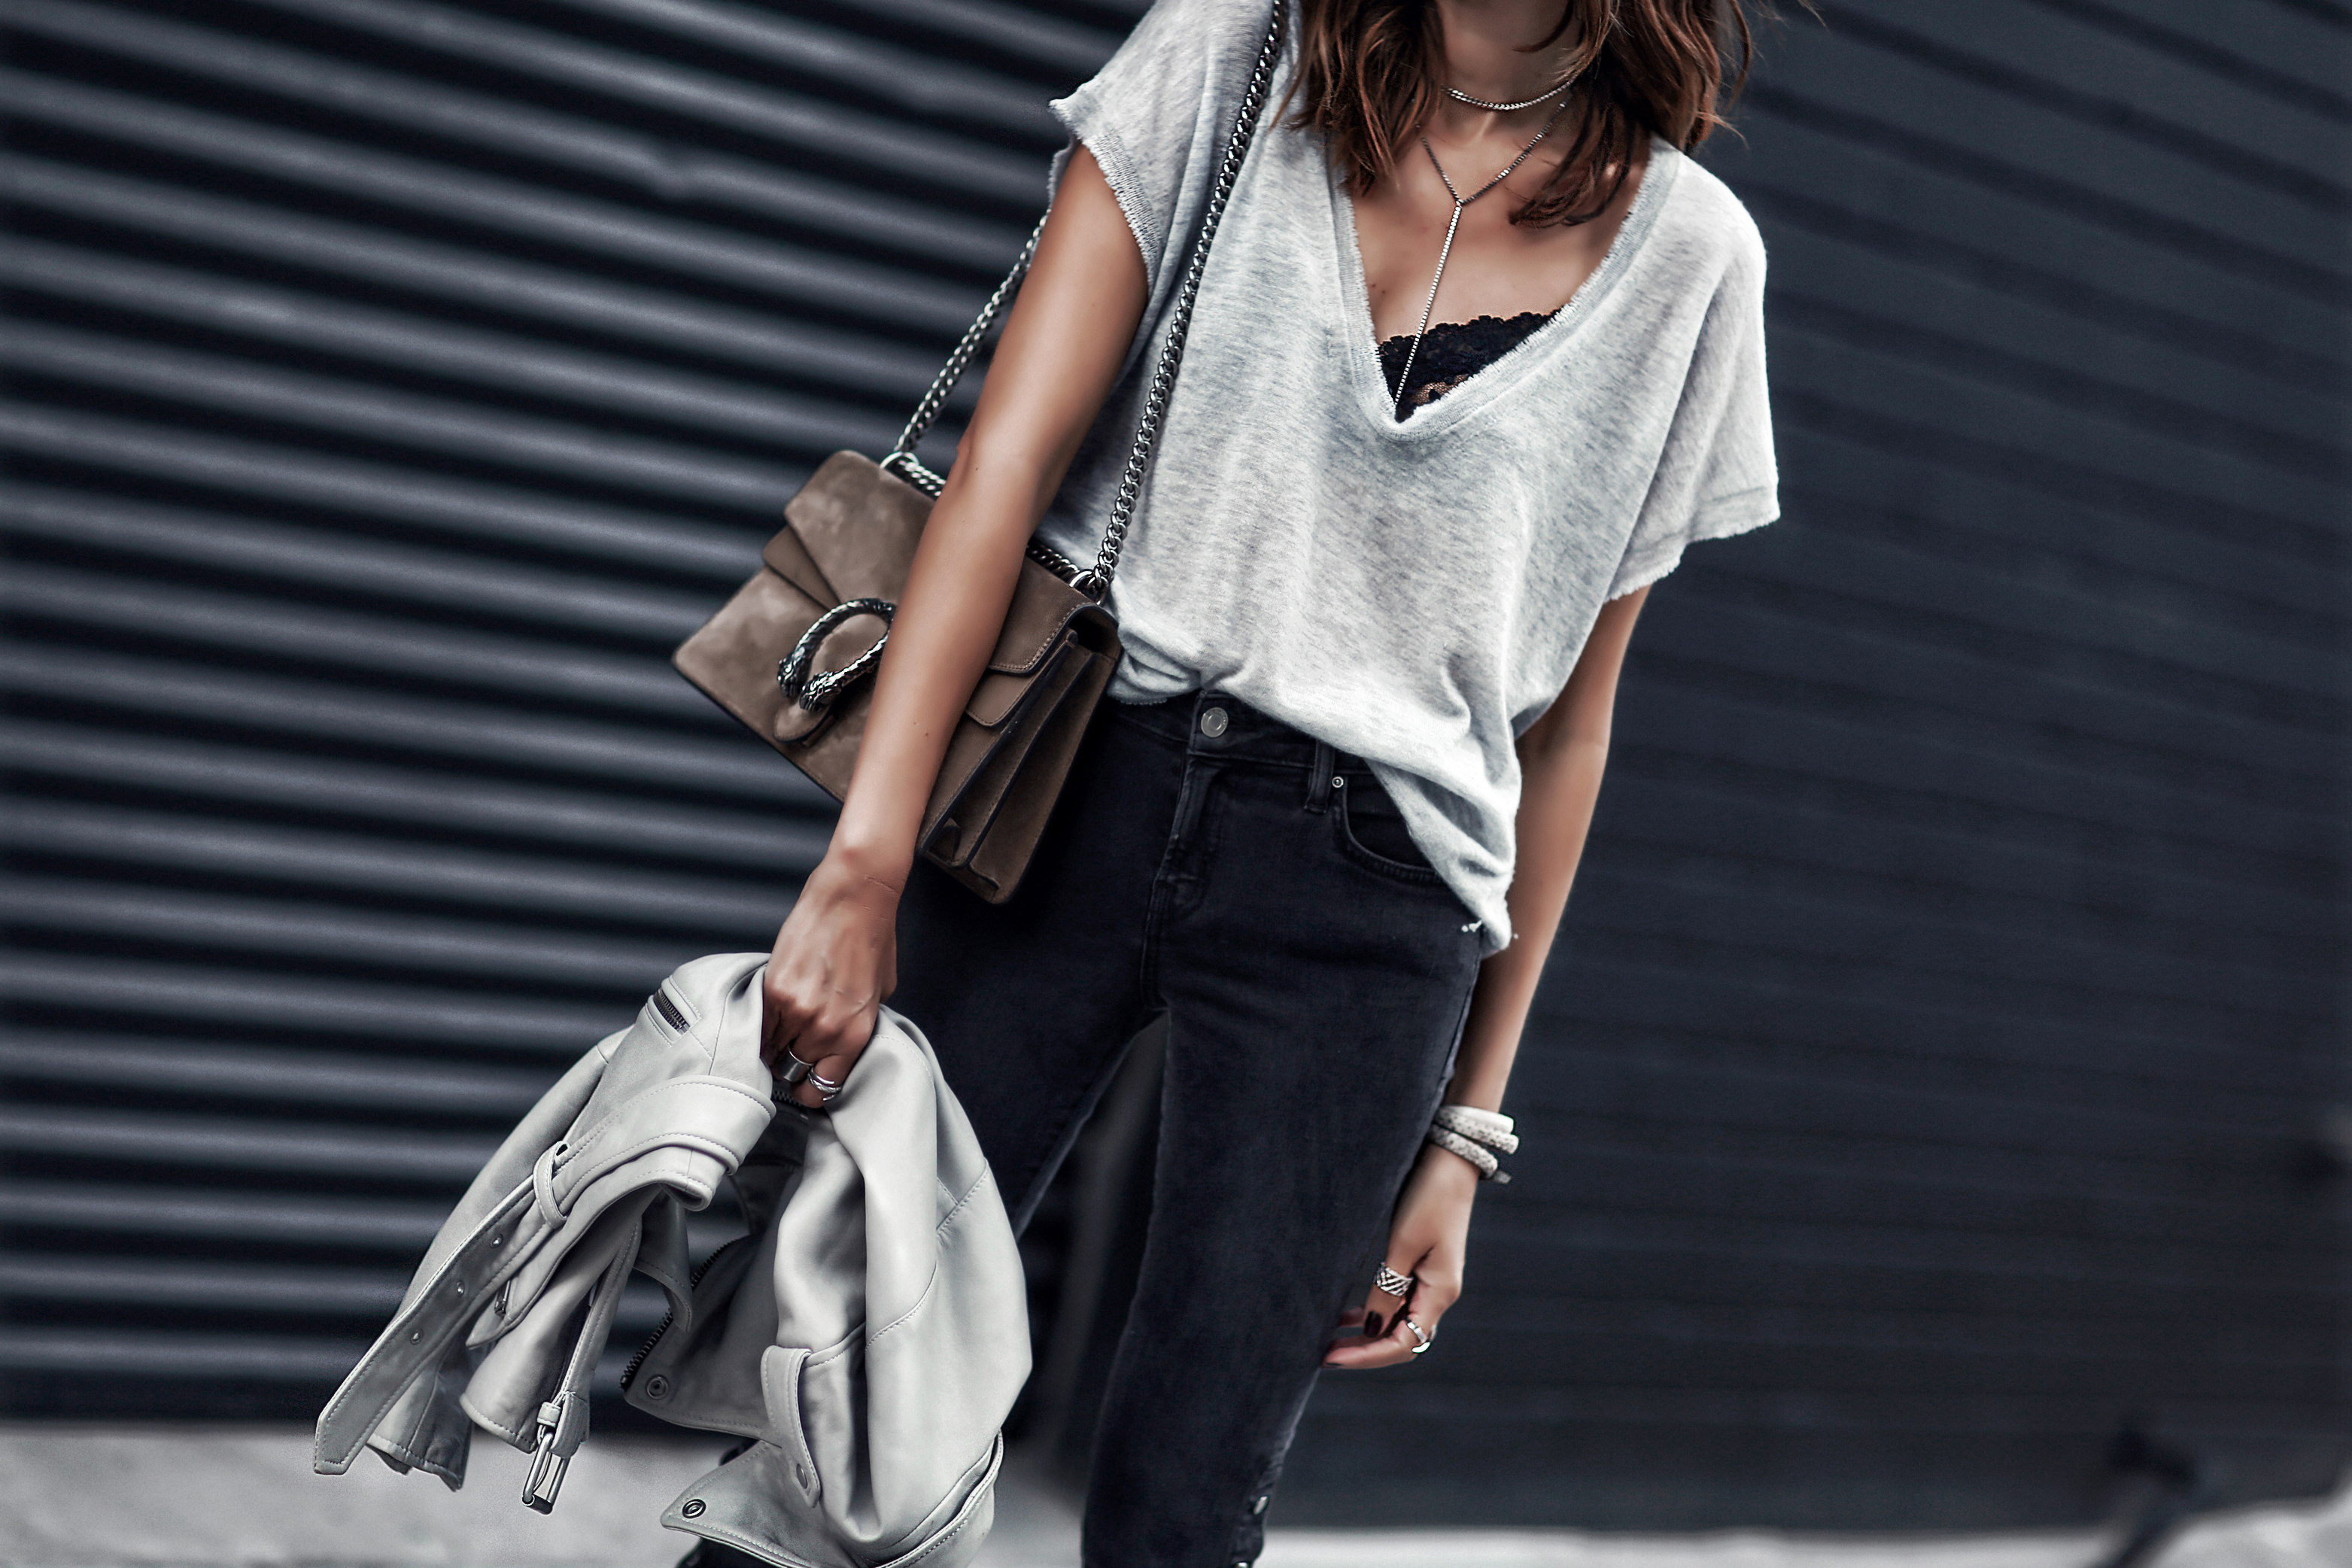 gray oversized knit tshirt, black lace bralette, faded black jeans with snaps, gray leather jacket, gucci bag